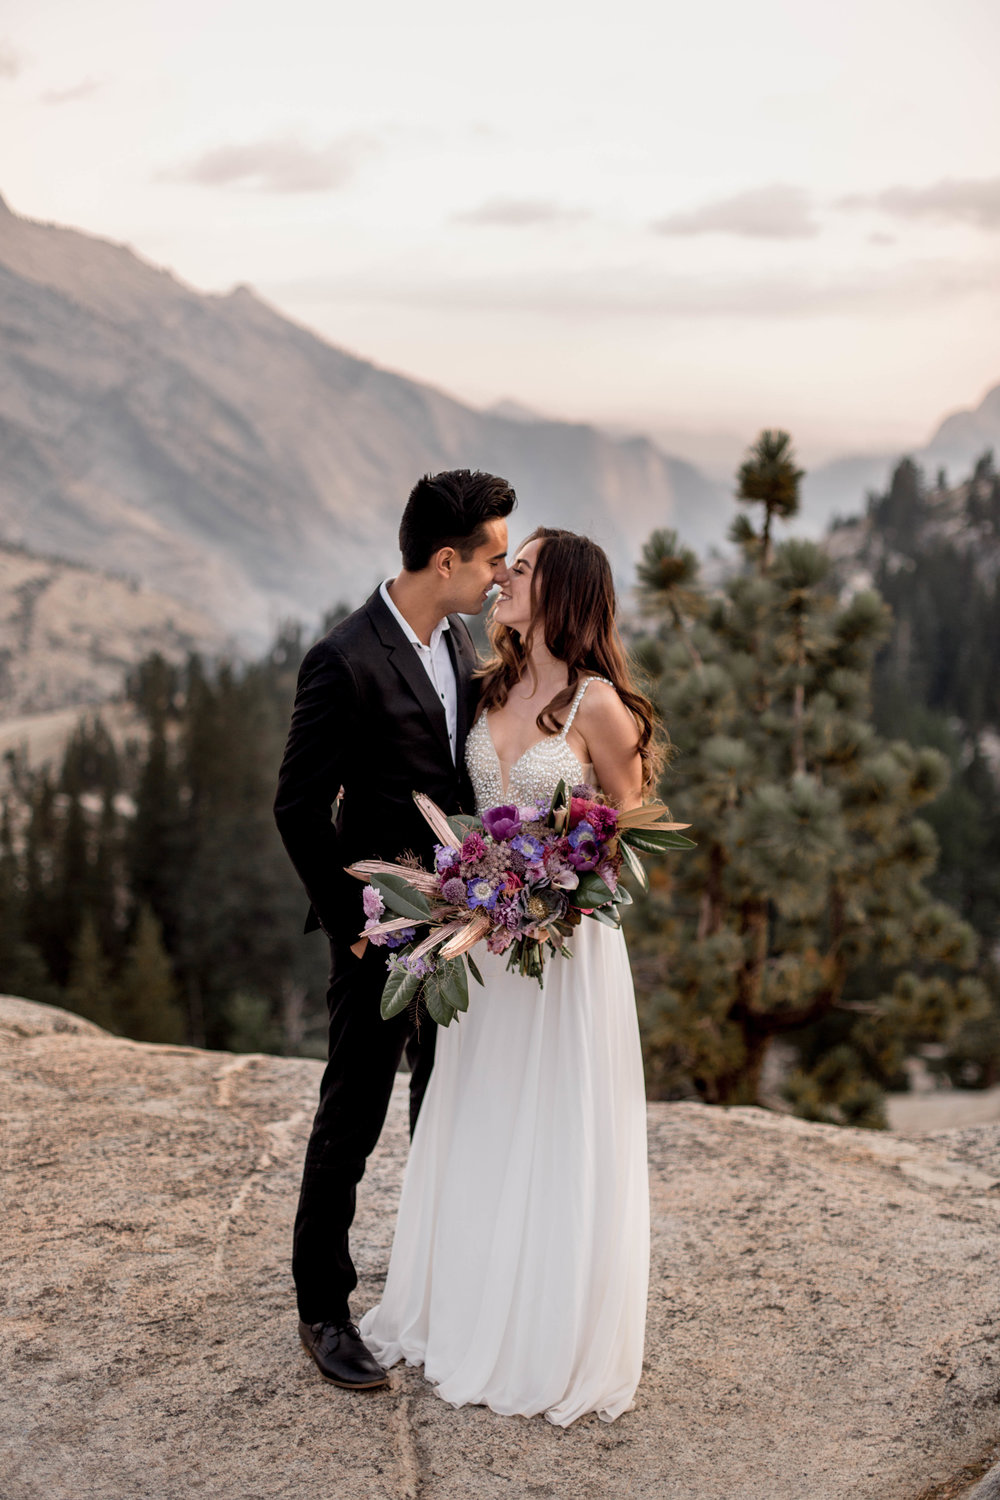 nicole-daacke-photography-yosemite-national-park-wedding-sunset-elopement-olmstead-point-yosemite-adventure-wedding-photographer-adventurous-elopement-destination-wedding-national-park-wedding-photography-1301.jpg